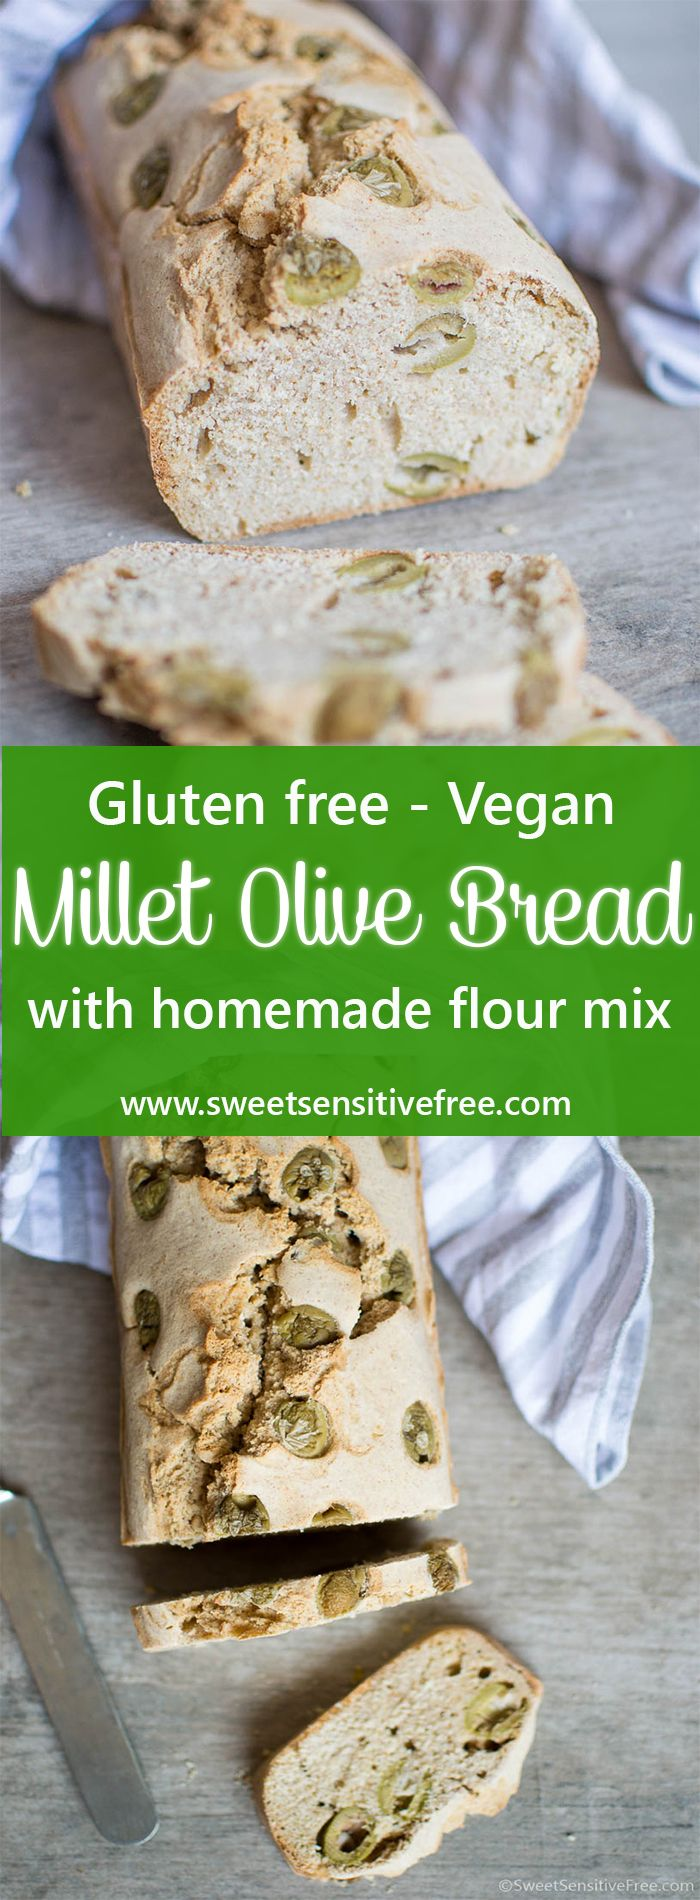 Gluten free, vegan millet olive bread loaf, made with a homemade gluten free flour blend! Just great either freshly baked or toasted to make bruschette!